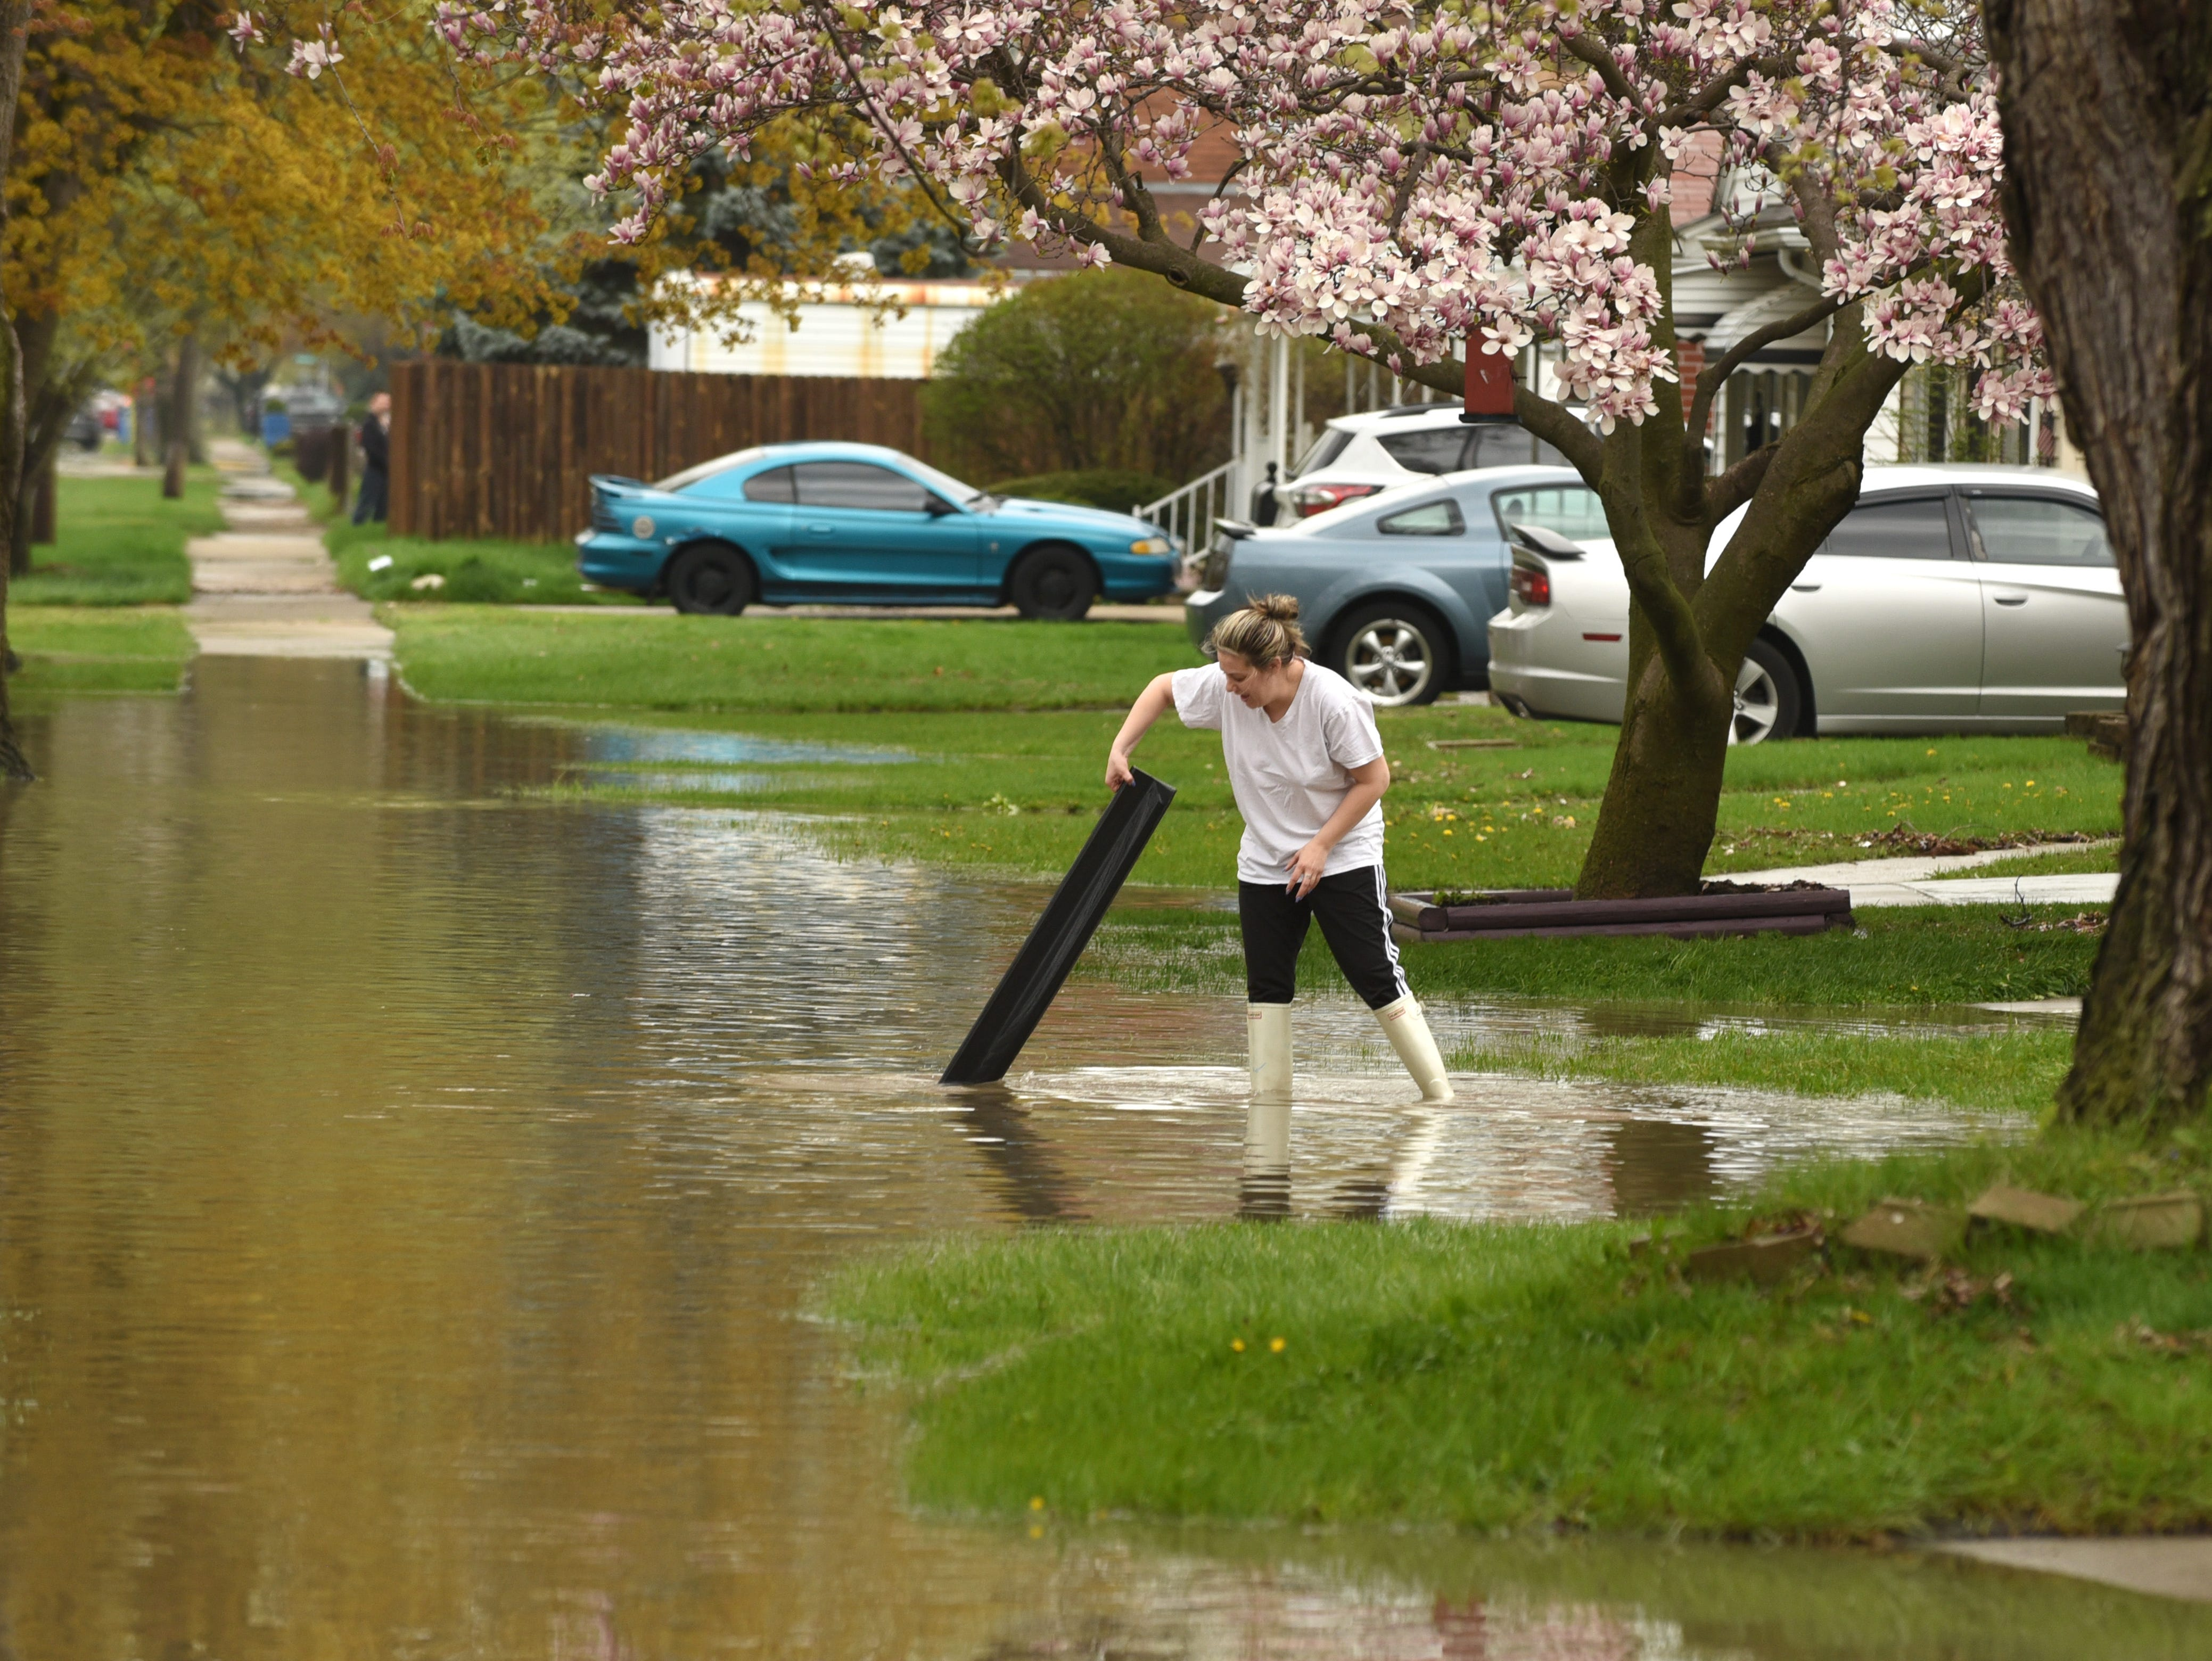 A woman clears debris from a storm drain along Monroe Street in Dearborn Heights.